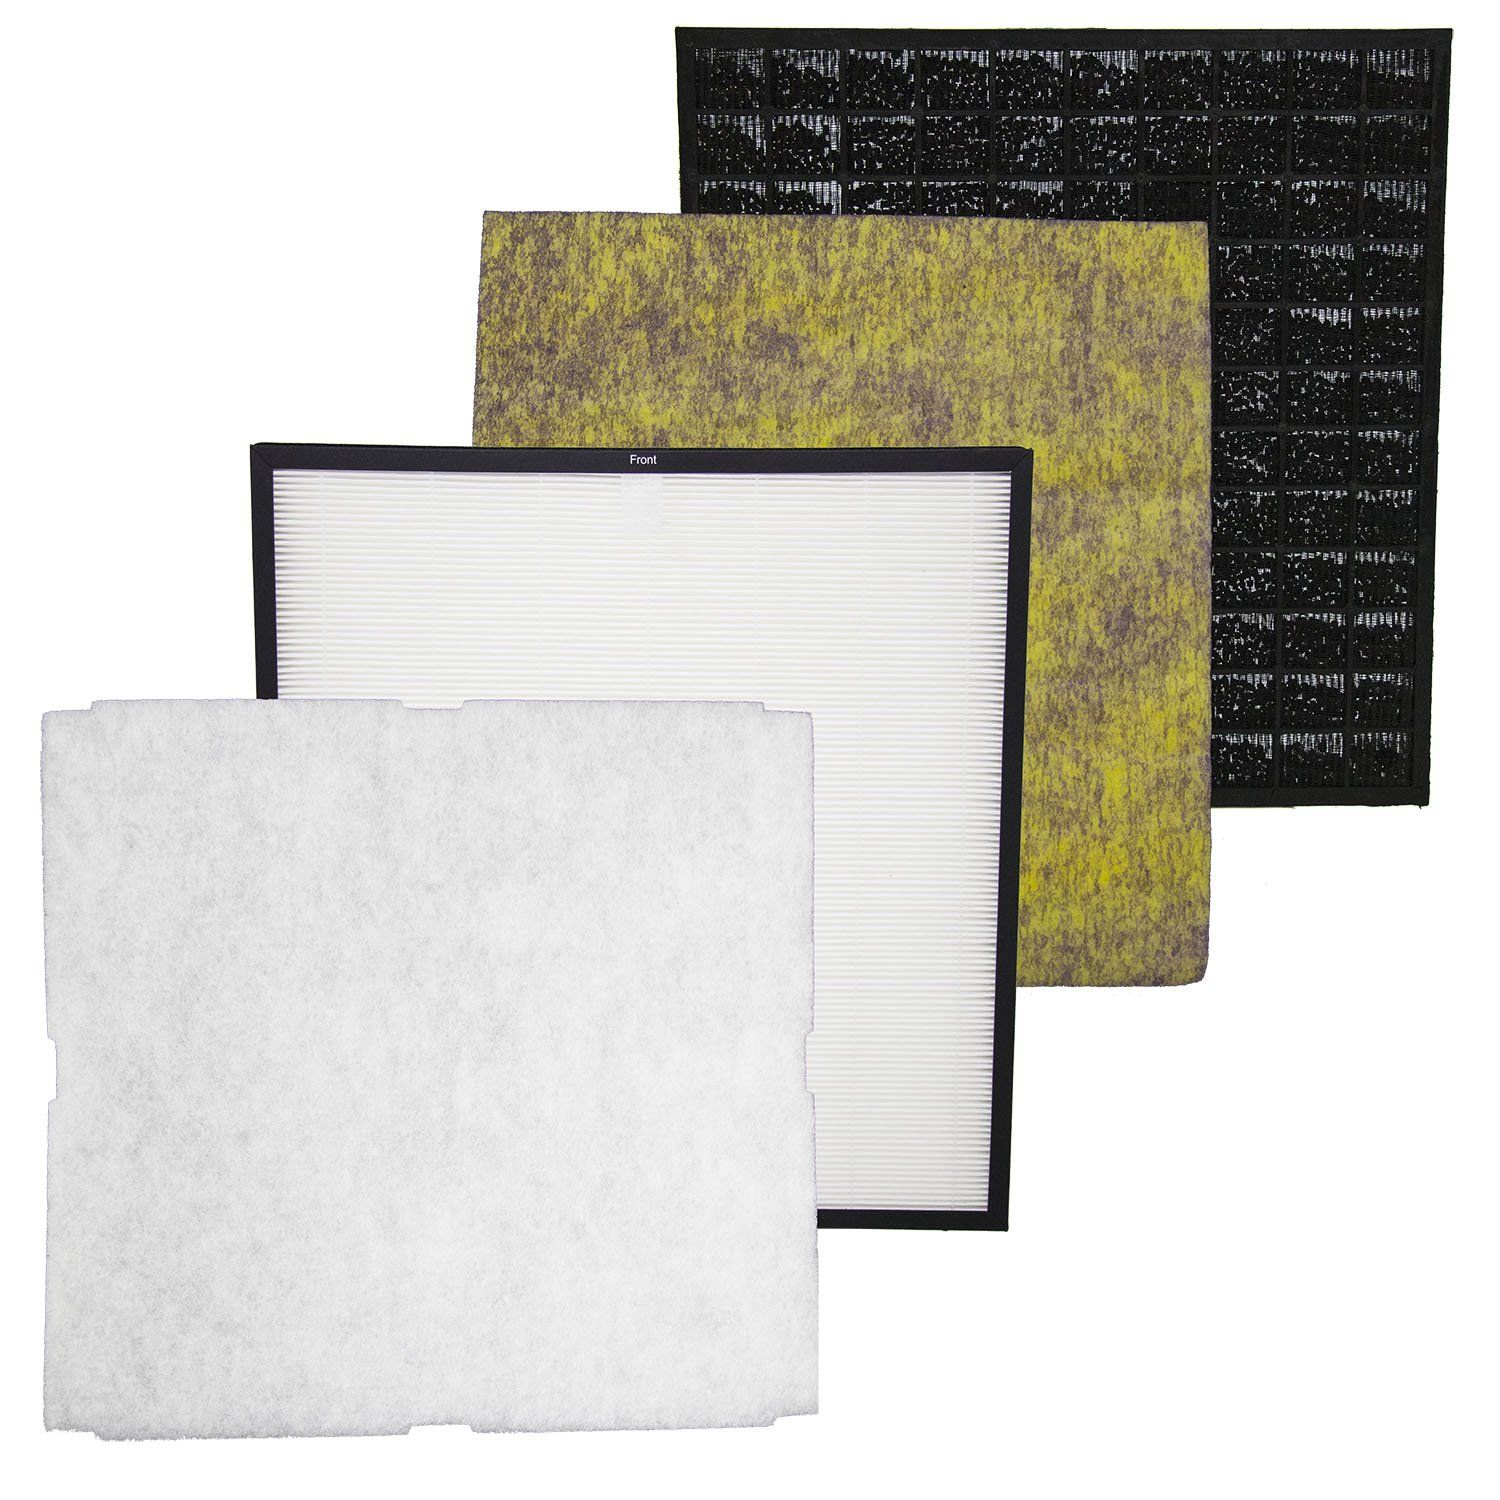 Replacement for Rabbit Air MinusA2 Filter Replacement Kit